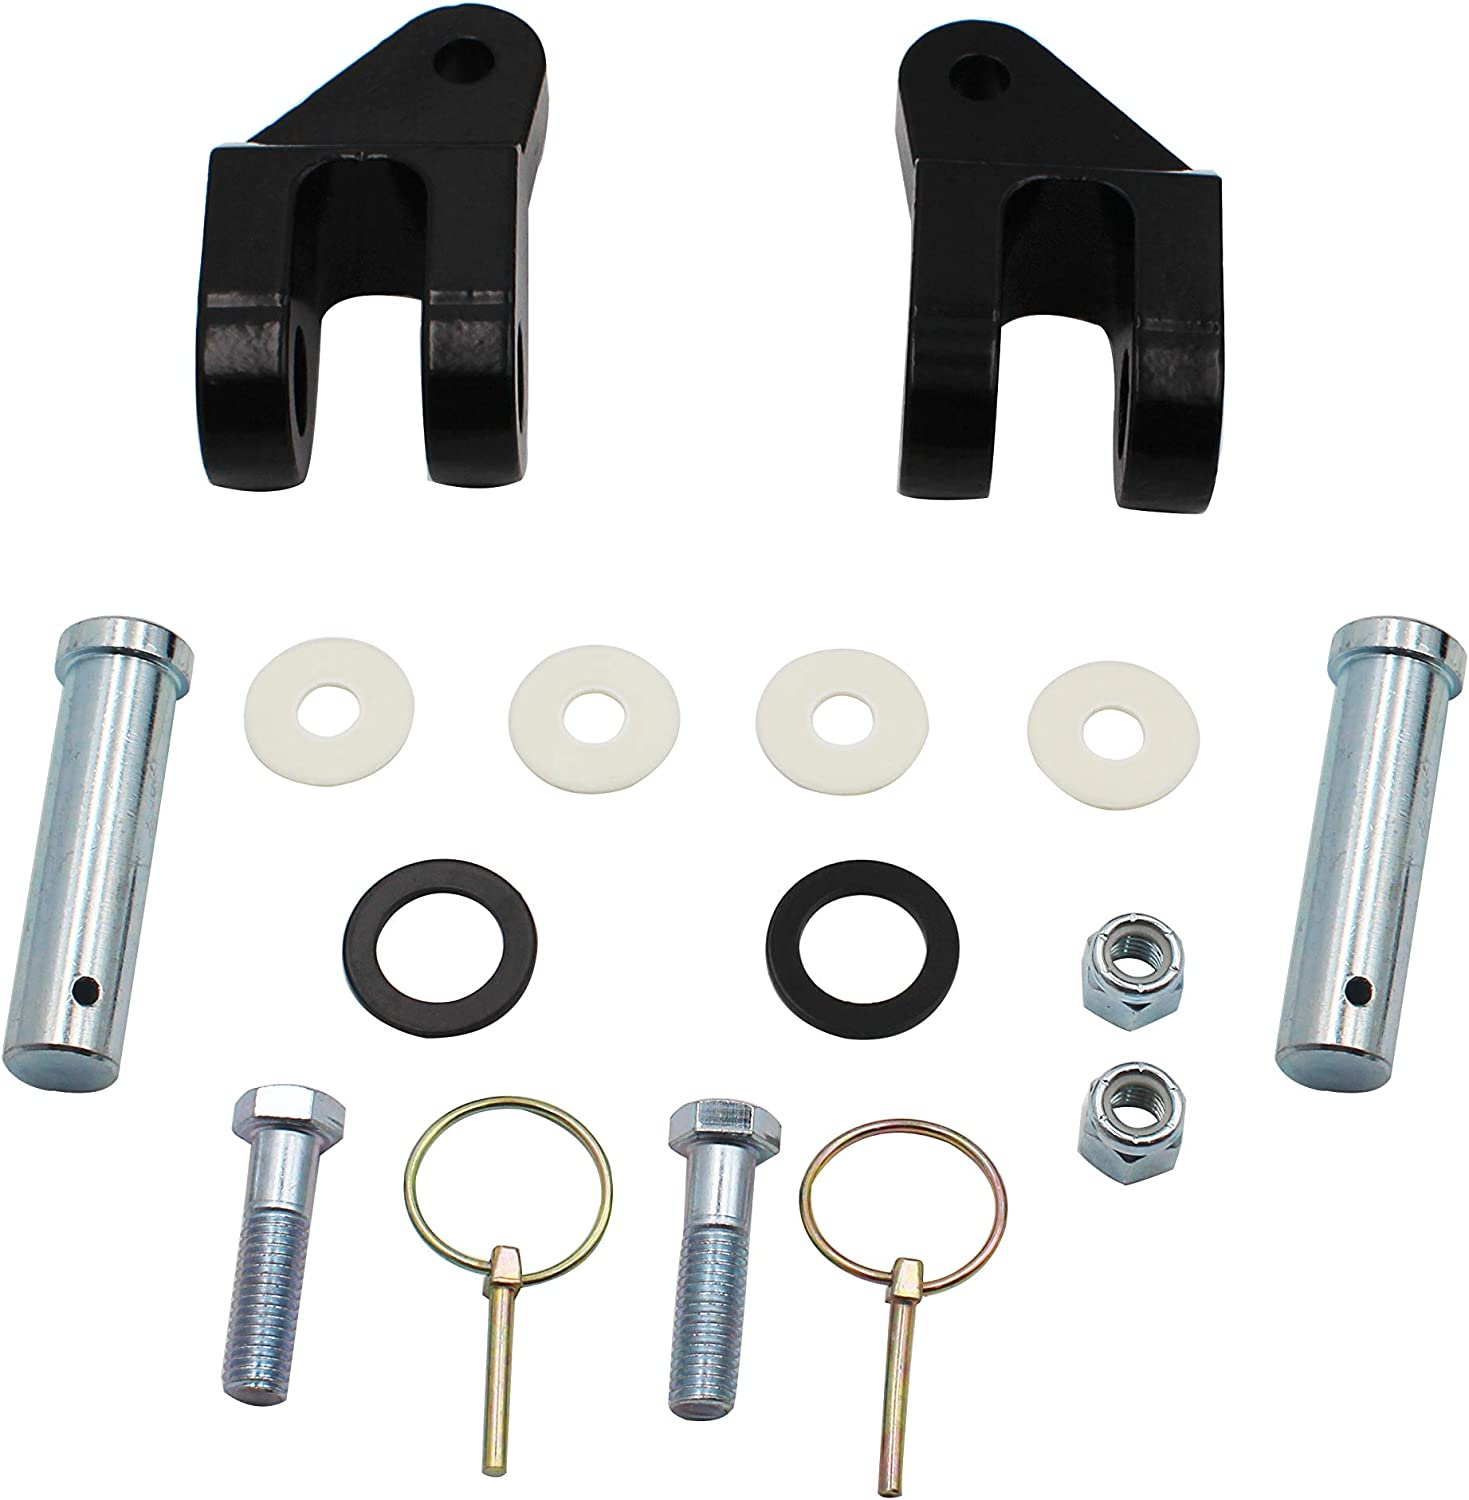 Suitable for Avail BX7420 Allure BX7460P Aventa II BX7335 Aventa BX7445 Ascent BX4370 BX88296 Tow Bar and Off Road Adapter Kit Replaces Blue Ox Acclaim BX4330 Alpha BX7365 Alladin BX4325